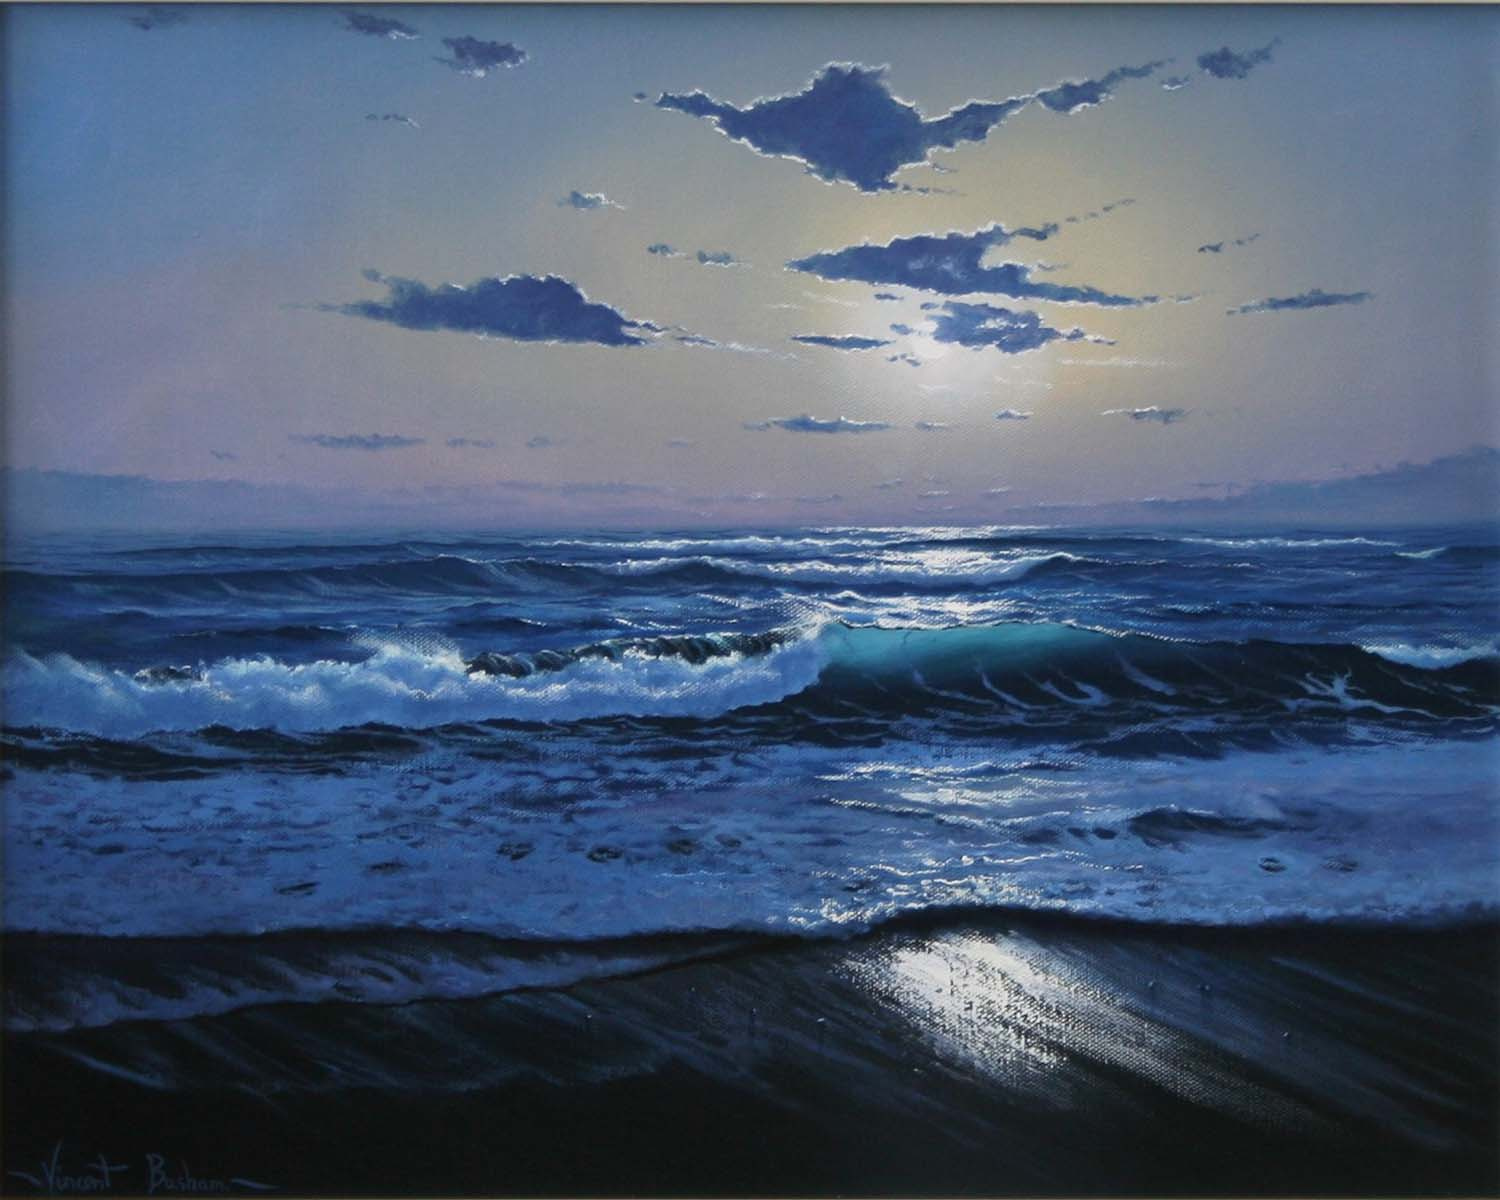 The Moonlight Shore 410 x 510